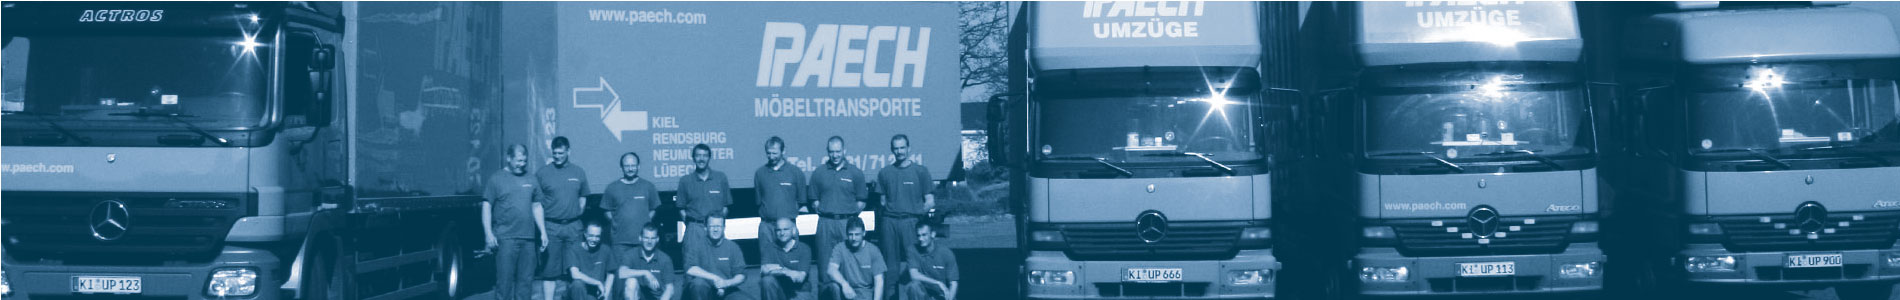 Ute Paech GmbH & Co. KG - A strong team...